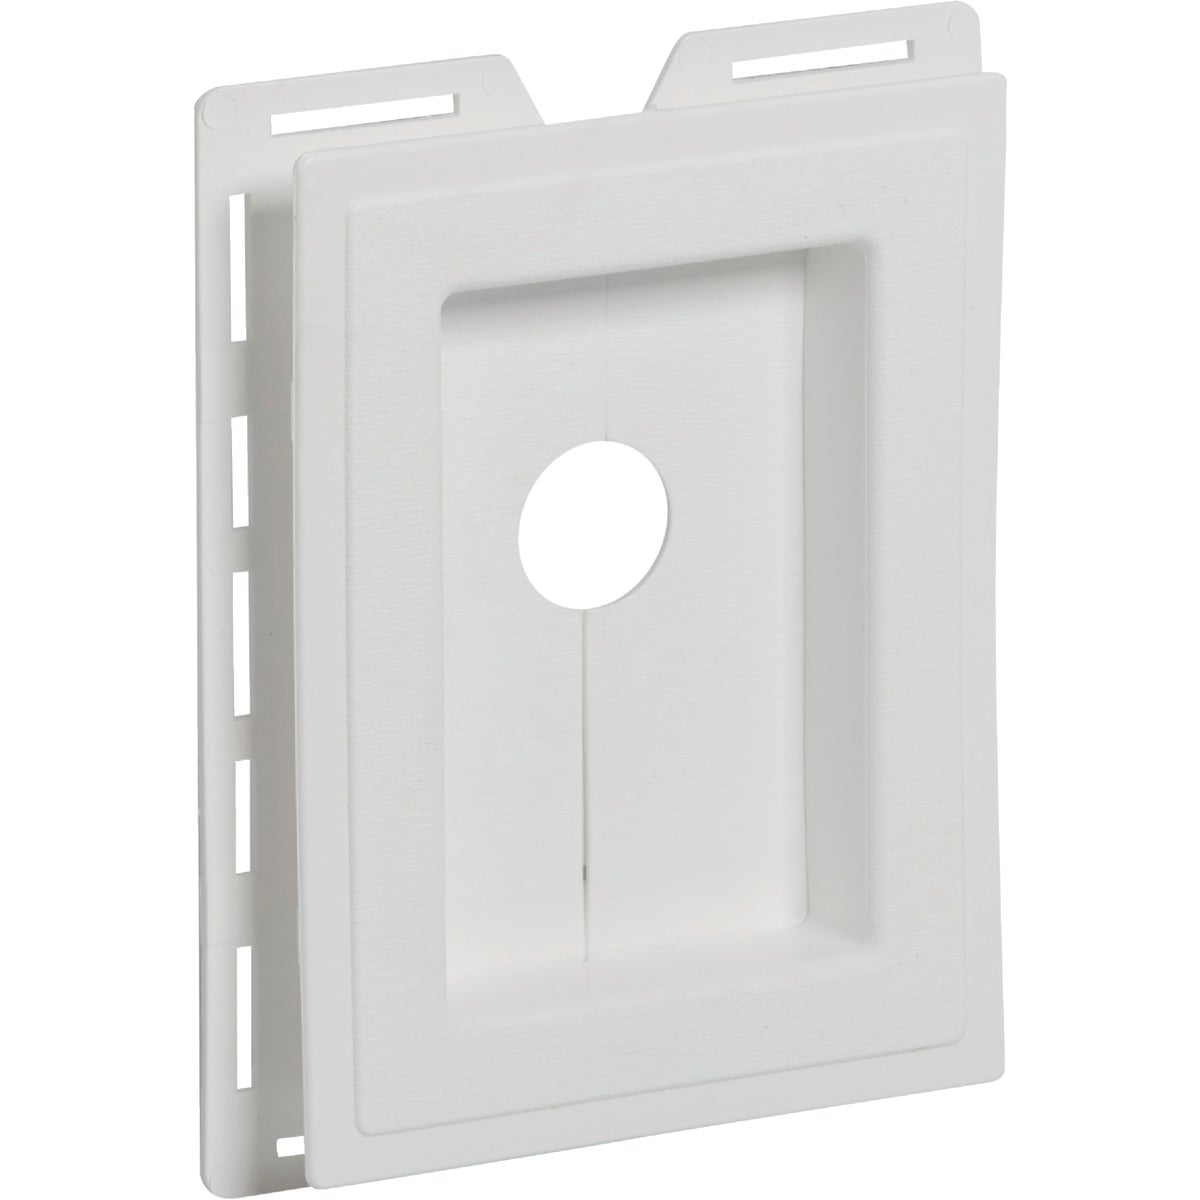 WHITE RECESS J-BLOCK - MBLOCKR PW by Alcoa Home Exteriors